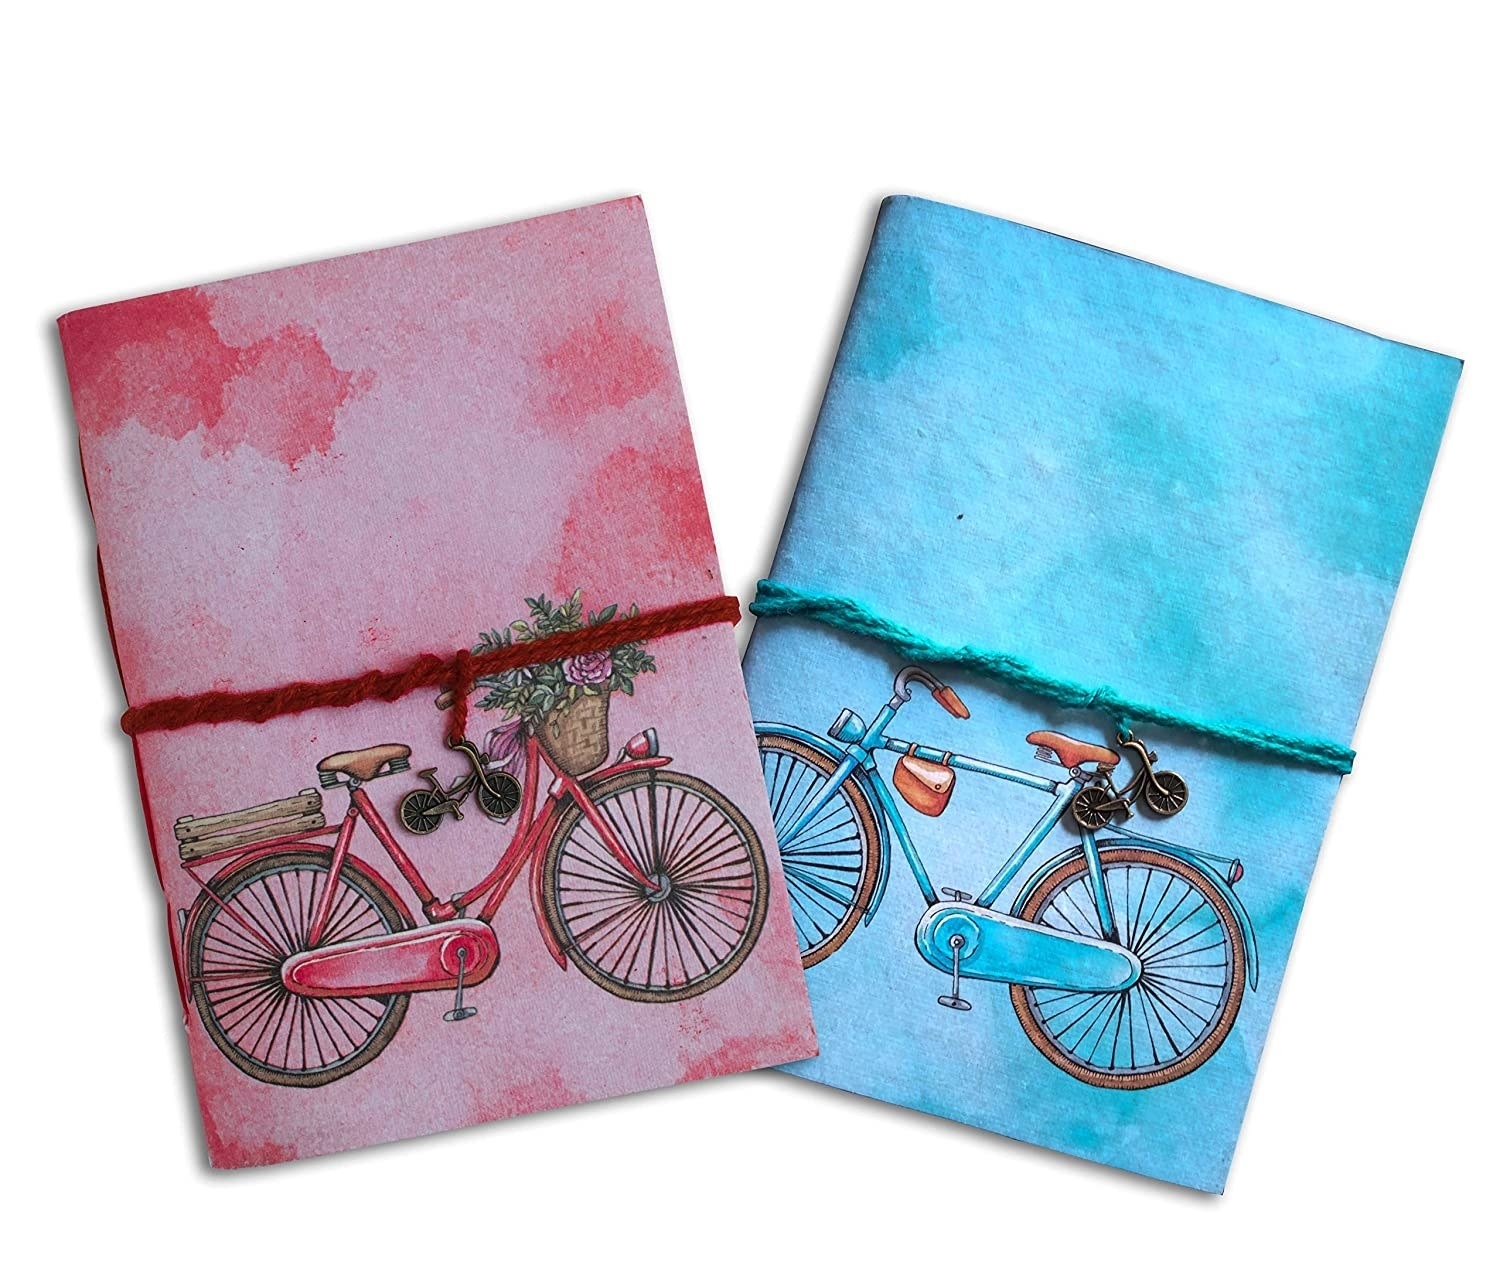 A pink and blue handmade diary with a bicycle on the cover.